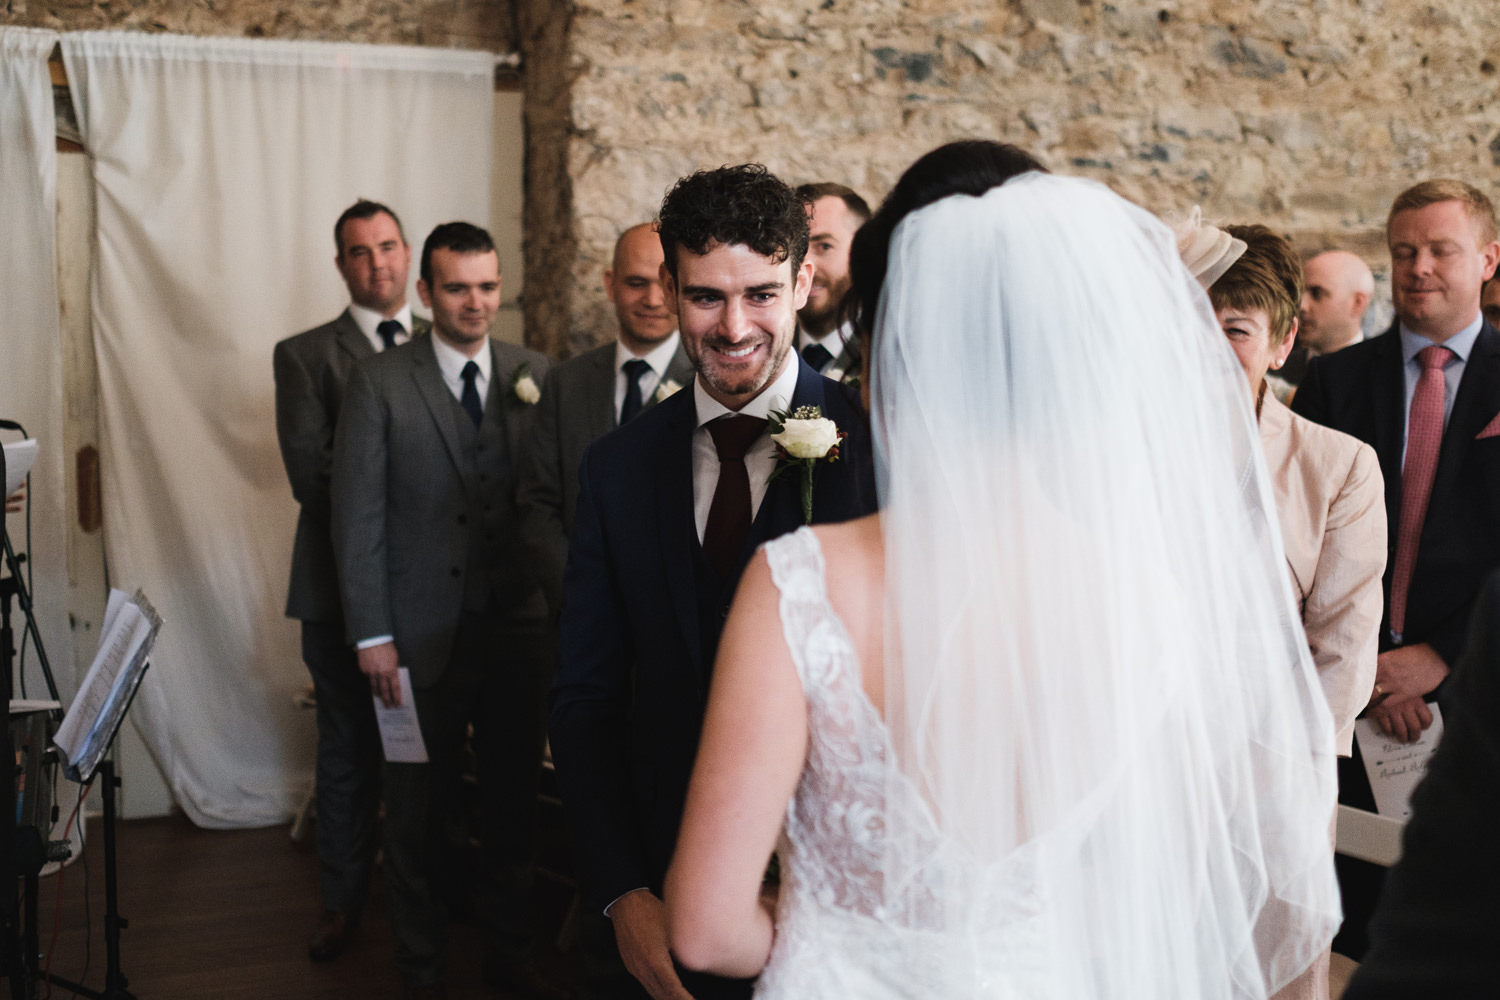 wedding in cloughjordan by fuji photographer david mcclelland